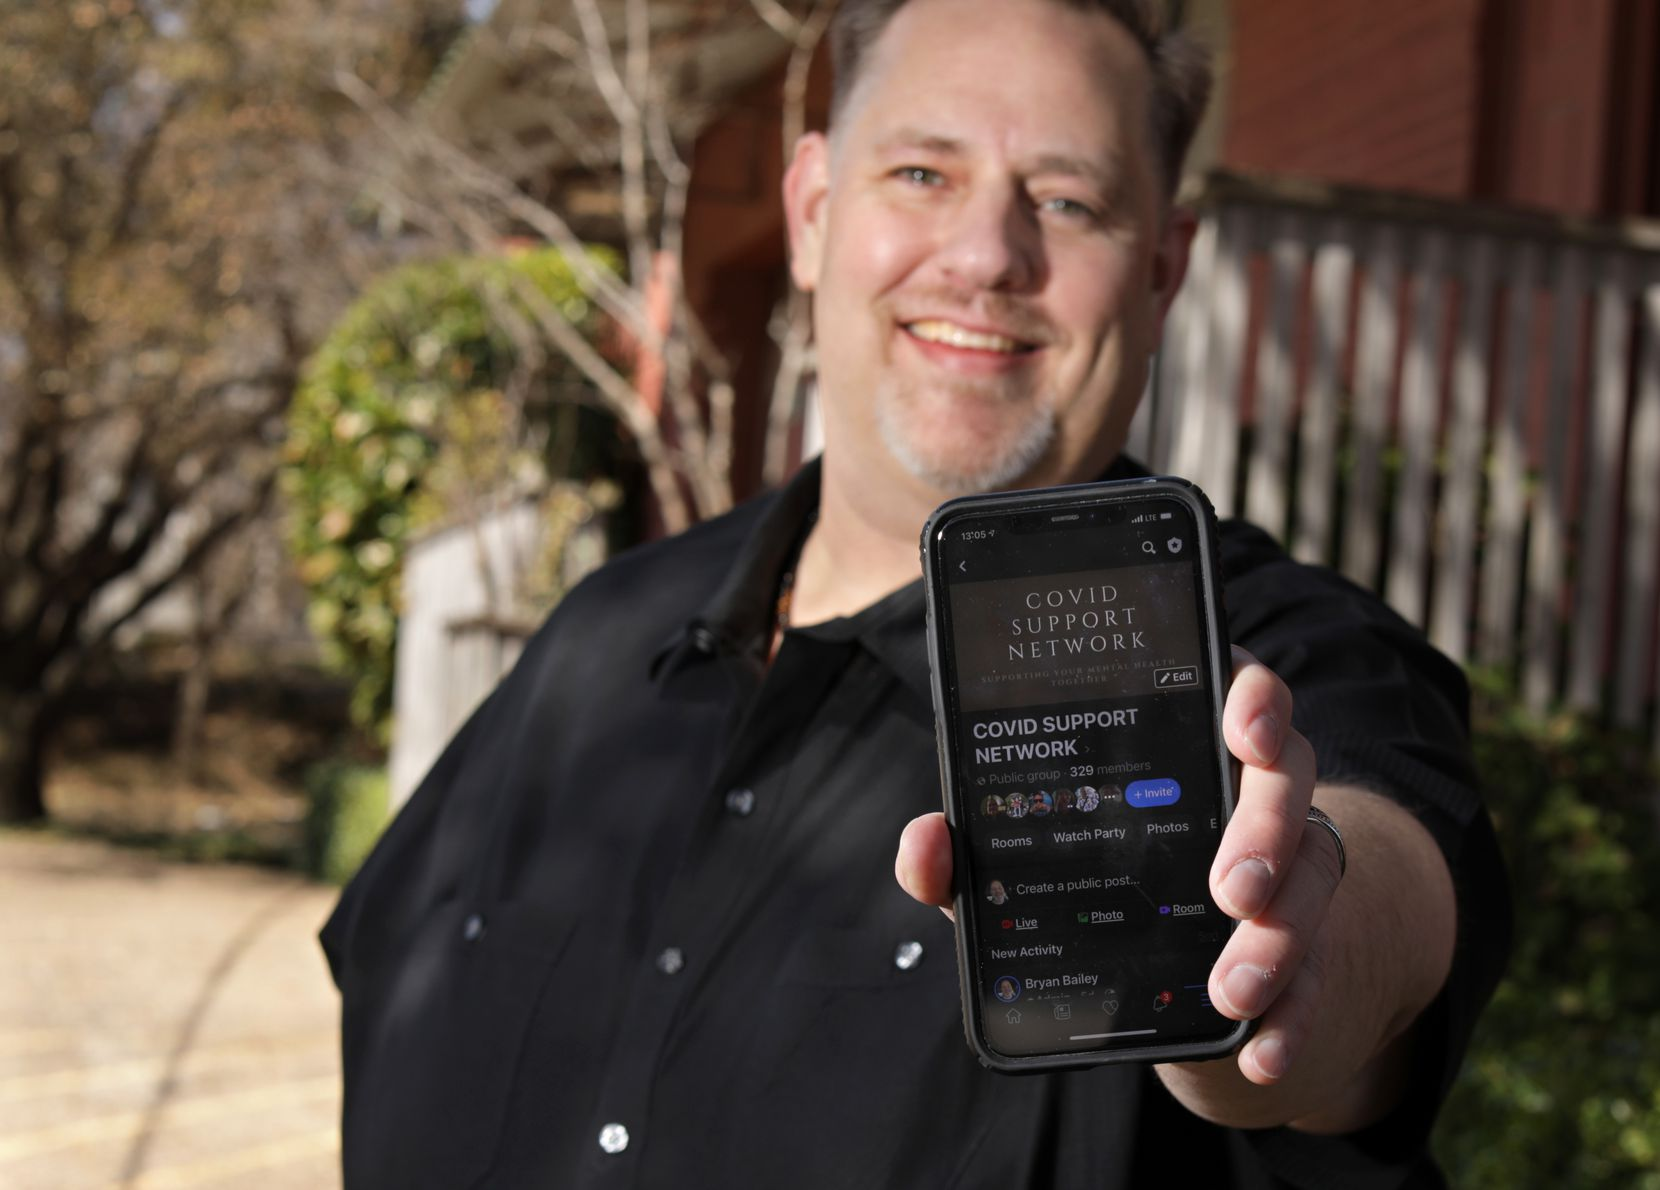 Bryan Bailey shows off his COVID support group accessed through his phone, as he poses for a photograph near his home in Dallas, TX, on Mar. 7, 2021. (Jason Janik/Special Contributor)